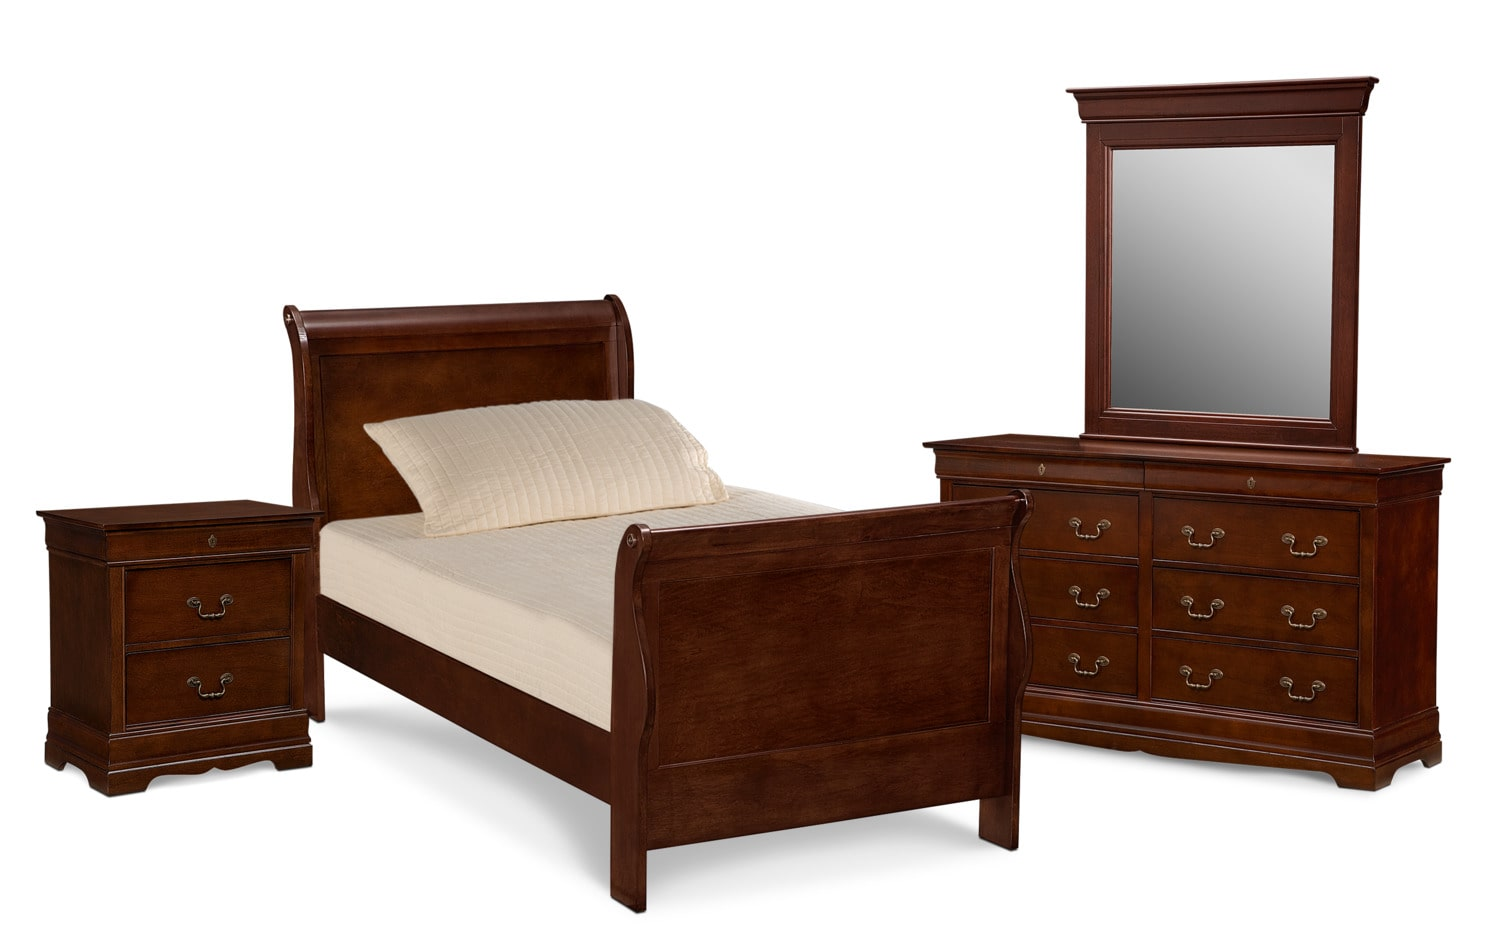 Kids Furniture - Neo Classic Youth 6-Piece Bedroom Set with Nightstand, Dresser and Mirror